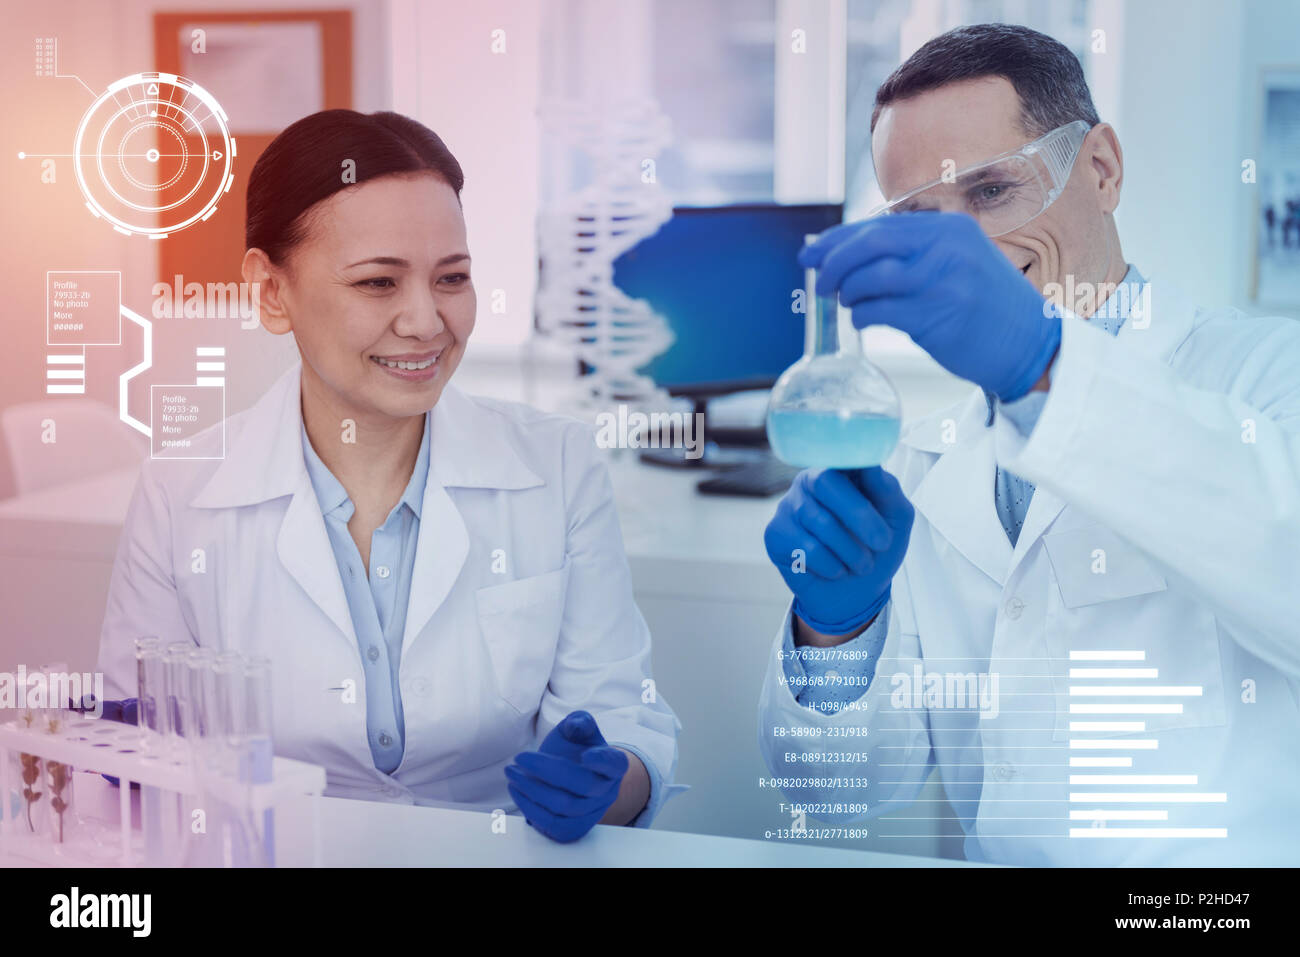 Positive scientist looking at the liquid in a bottle and smiling happily - Stock Image